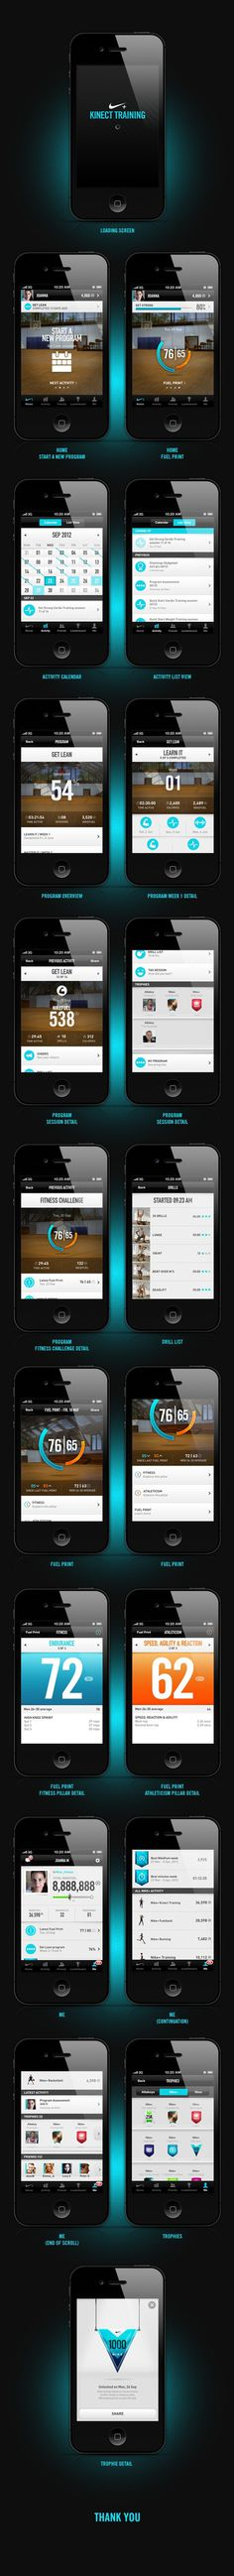 Nike+ Kinect Training (iphone app) on Behance #kinect #ui #iphone #nike #app #xbox